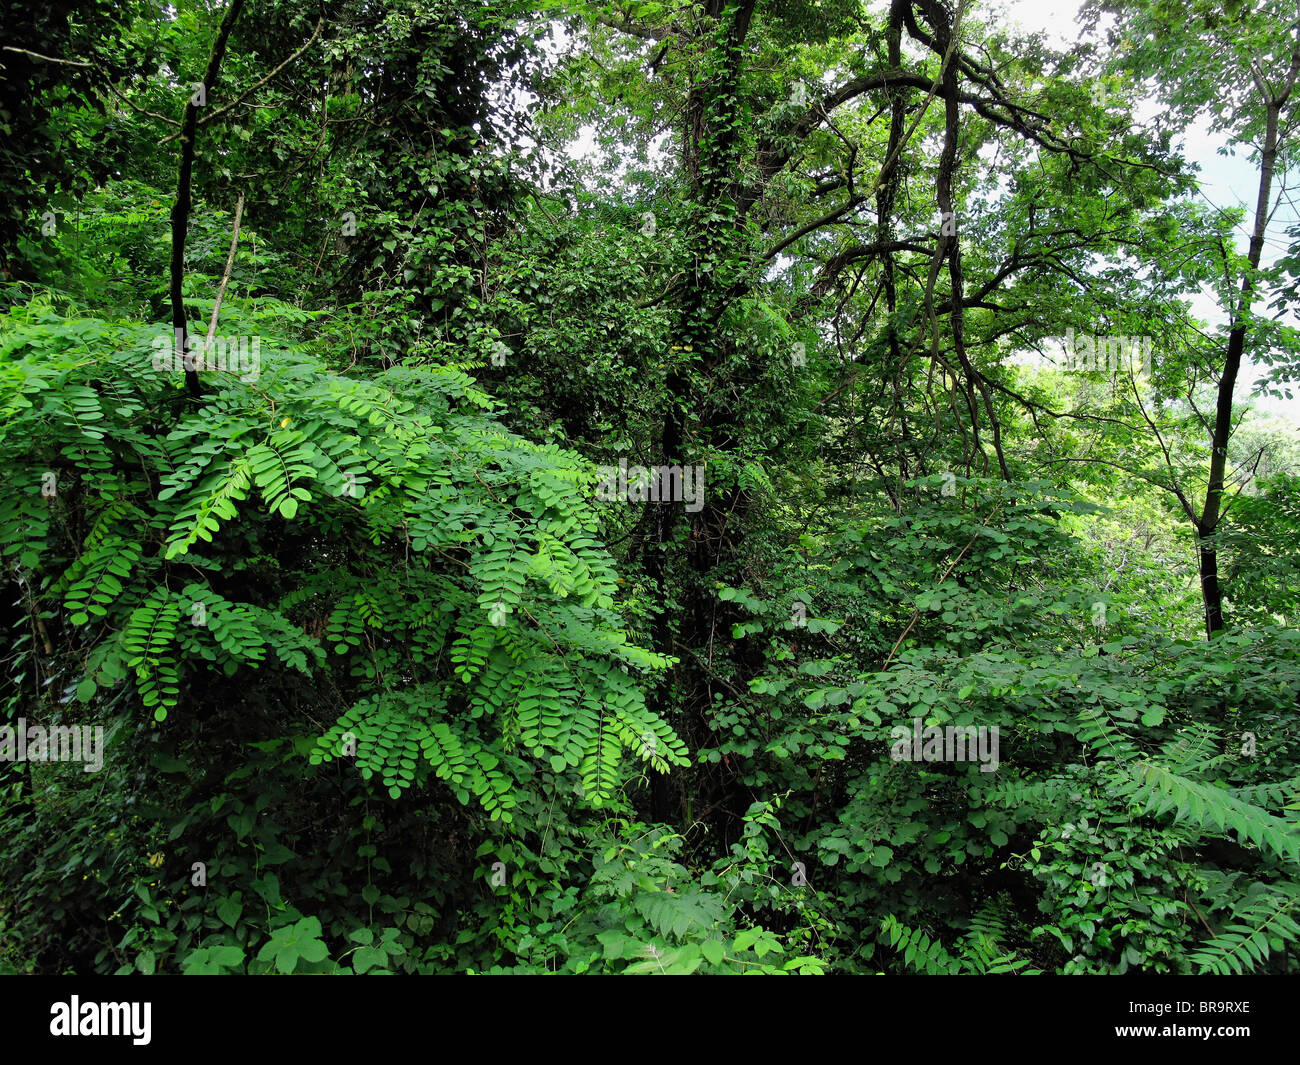 lush vegetation after rain shower (near village of ascona) - canton of ticino - switzerland - Stock Image